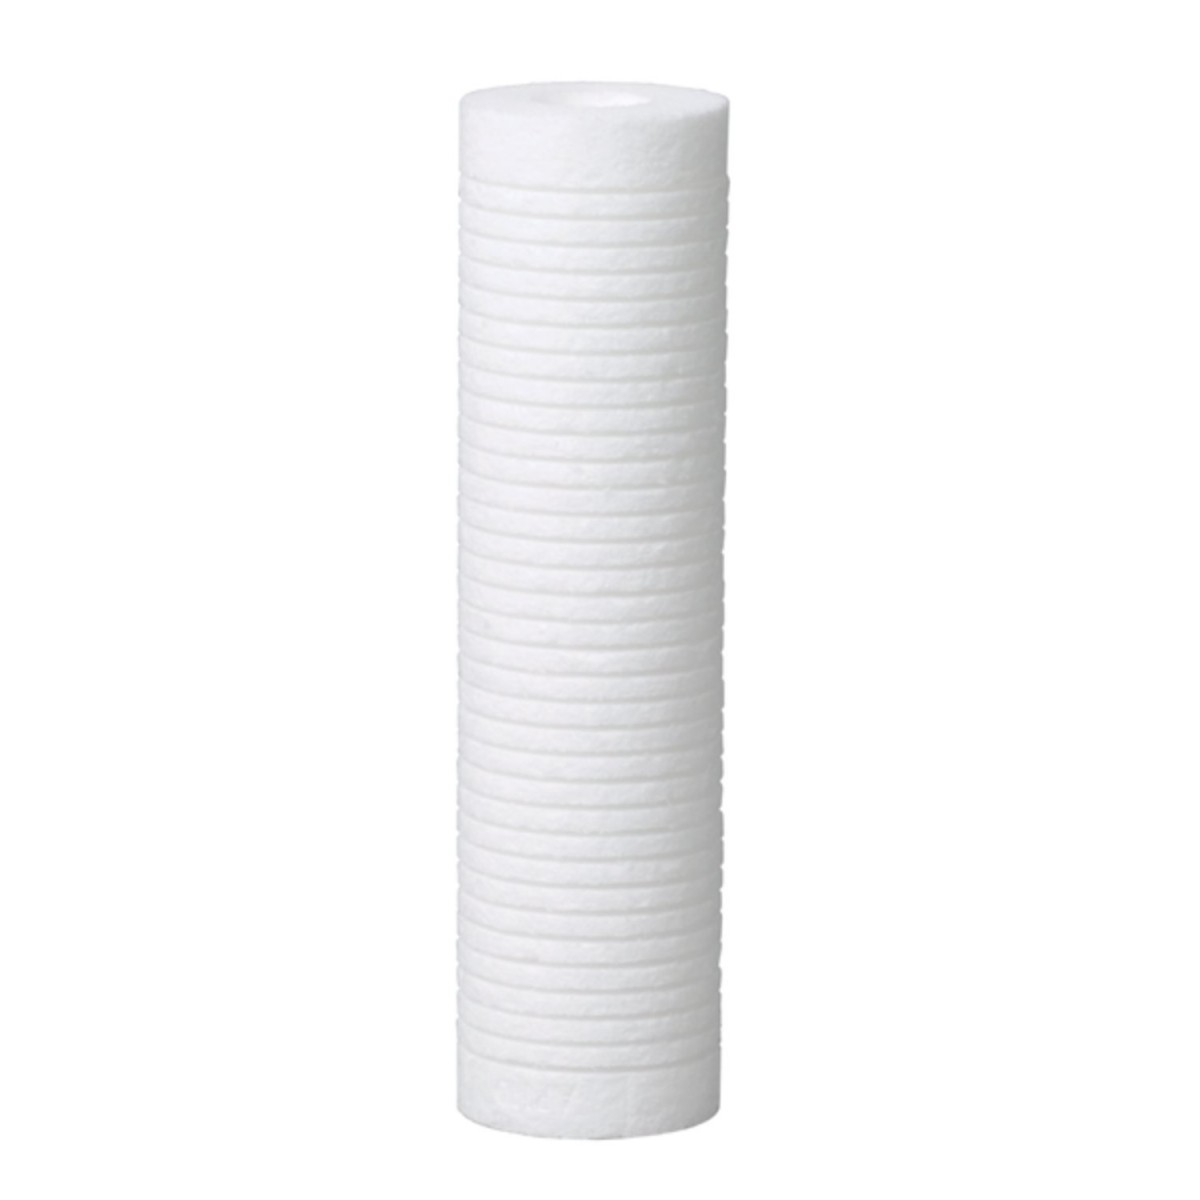 3m Aqua Pure Ap124 Whole House Water Filter Cartridge